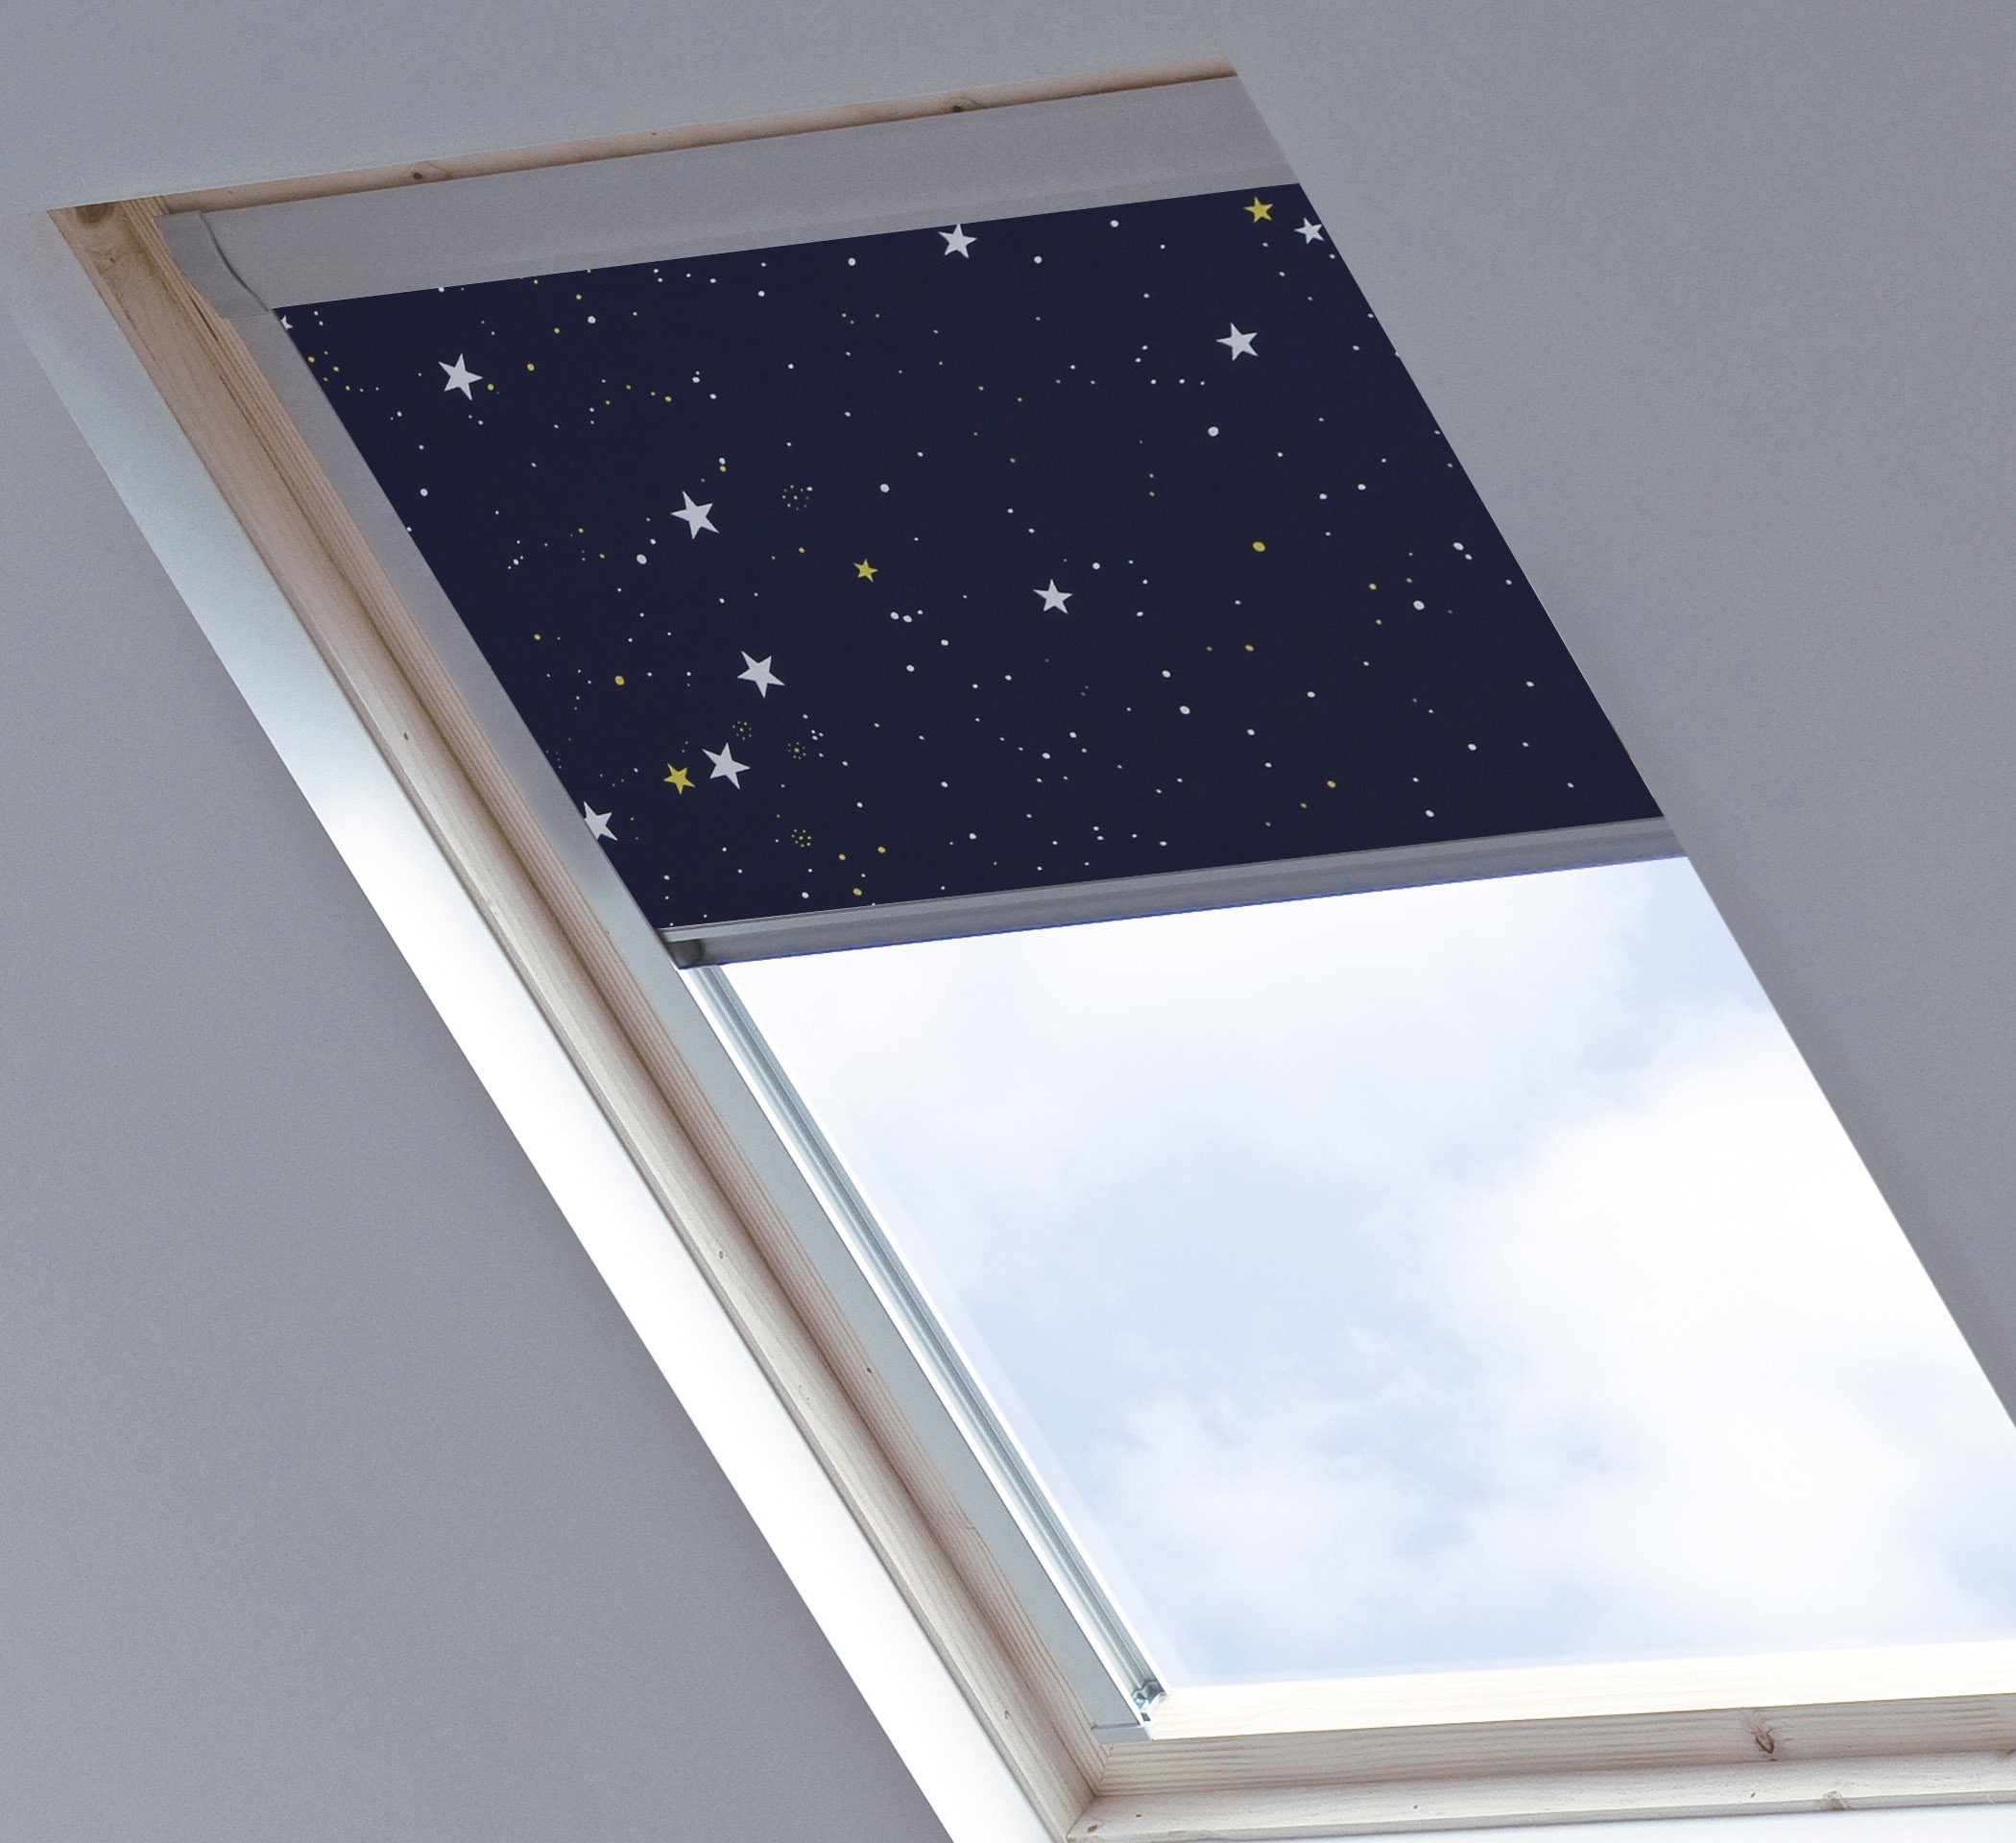 Skylight blinds d c blinds Velux skylight shade